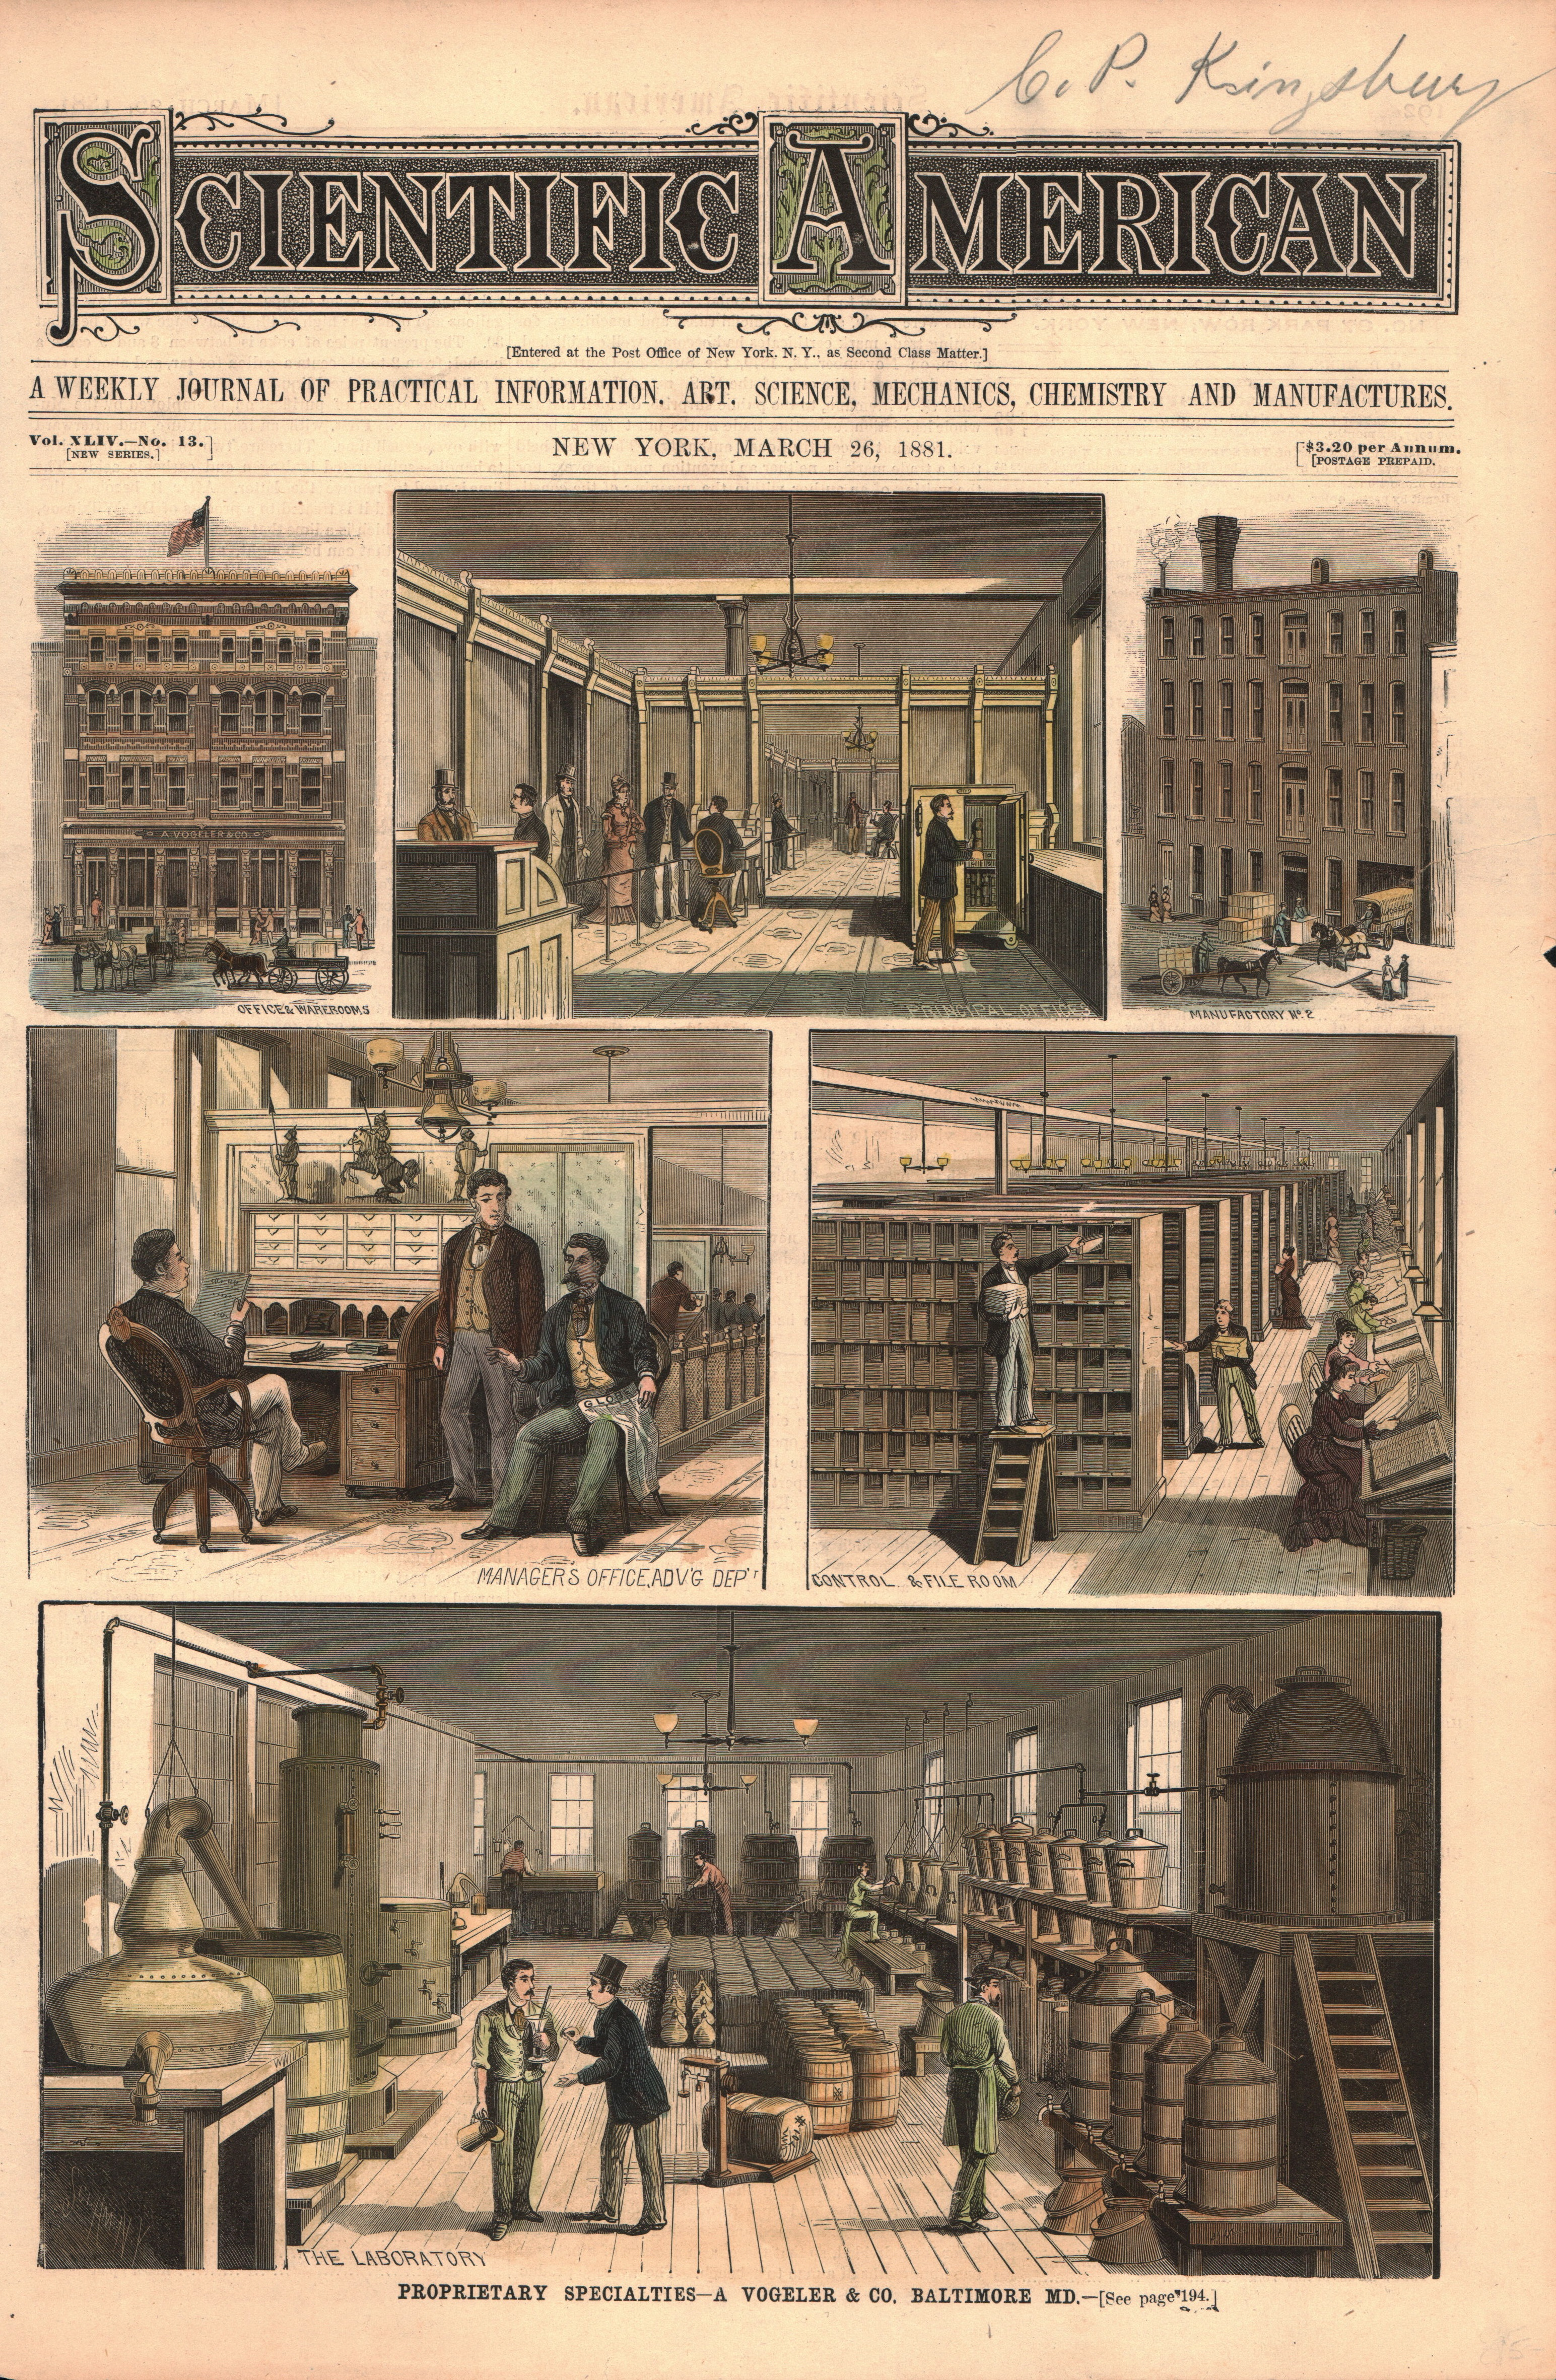 Proprietary Specialties-A Vogeler & Co. in Baltimore, MD